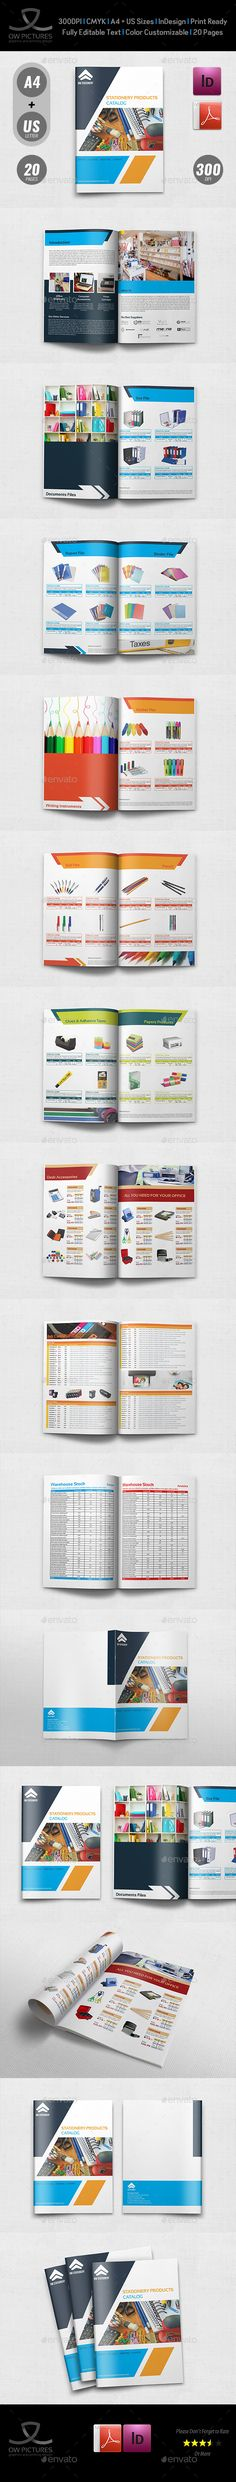 Stationery Products Catalog Brochure Template Vol.2 - 20 Pages - Catalogs Brochures Download here : https://graphicriver.net/item/stationery-products-catalog-brochure-template-vol2-20-pages/19427893?s_rank=143&ref=Al-fatih